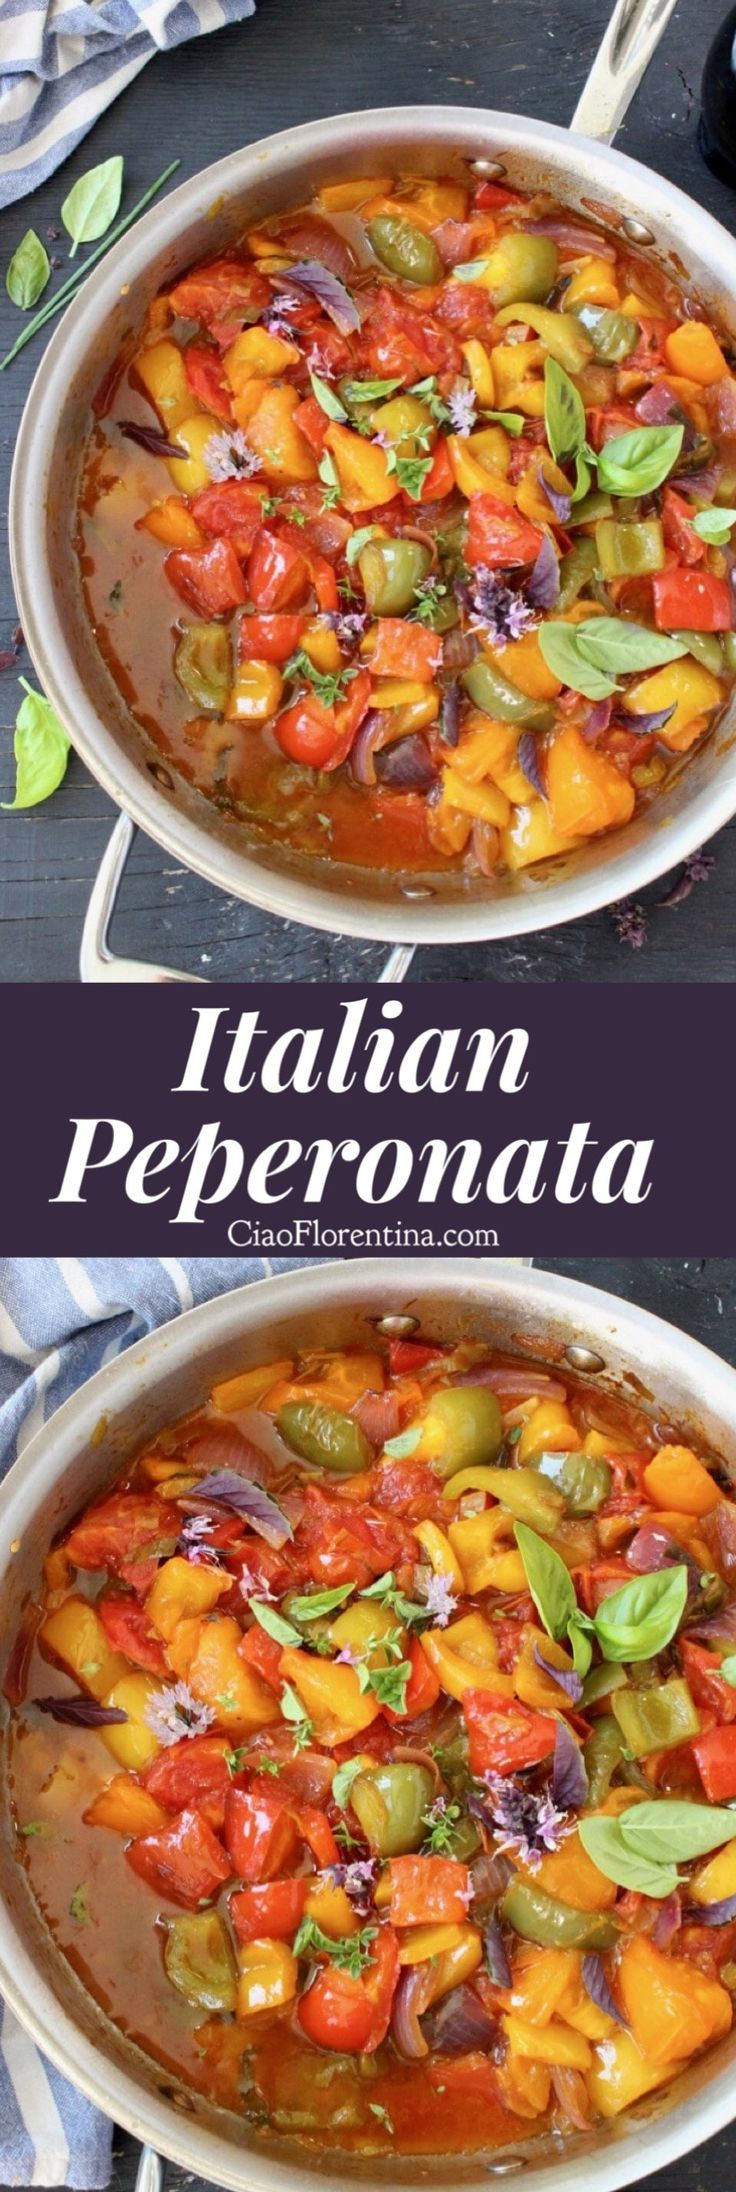 Peperonata Recipe, a Southern Italian sauce / stew traditionally from Calabria, made of stewed peppers, tomatoes and onions. Vegetarian, vegans and gluten free | CiaoFlorentina.com @CiaoFlorentina